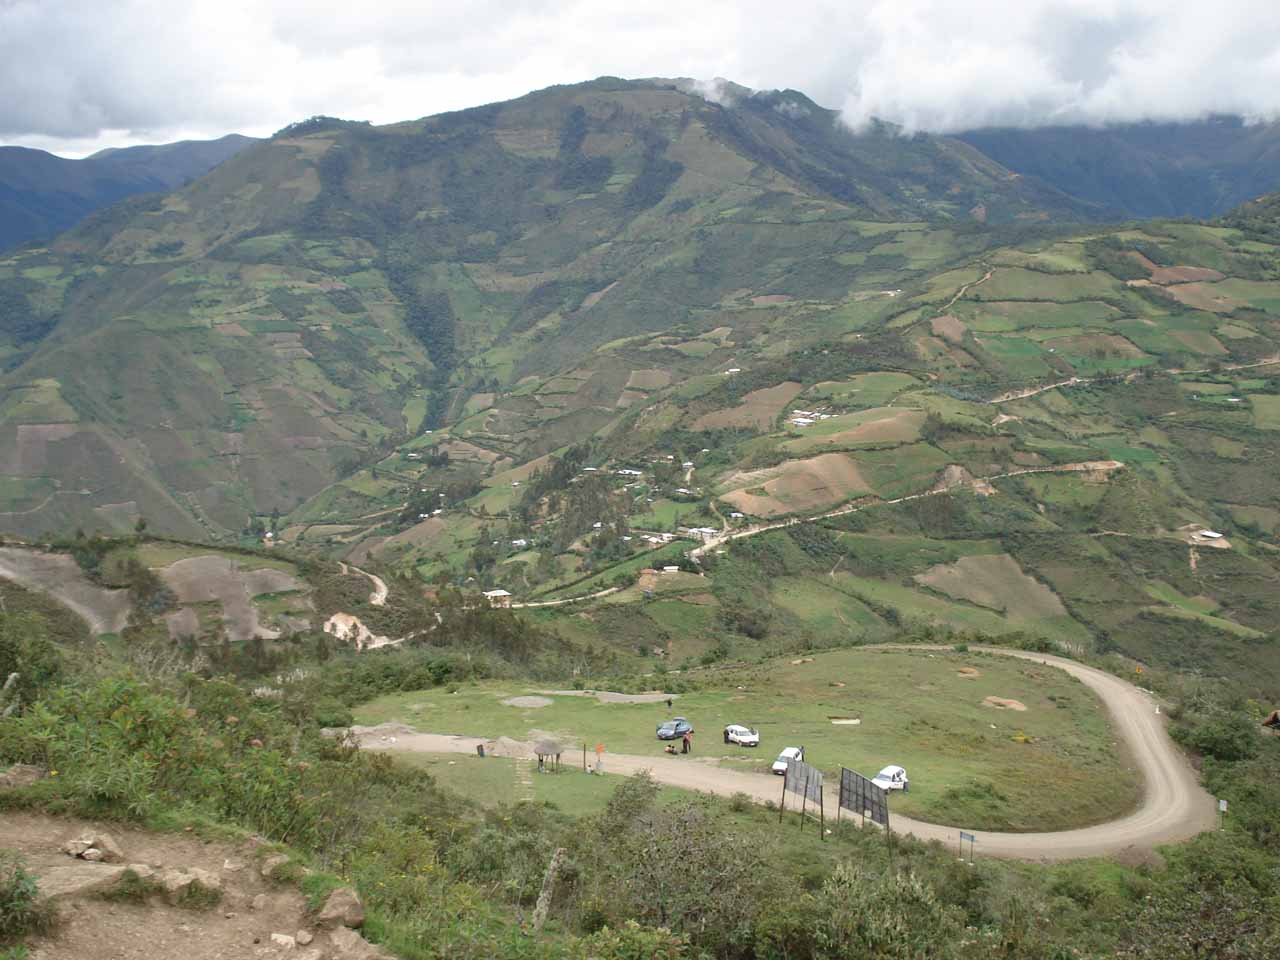 Not too far south from the Cocachimba turnoff on the main highway is the city of Chachapoyas.  The main archaeological attraction nearby here is called Kuelap, which is a fortress perched atop a mountain yielding gorgeous panoramic views of the surrounding mountains